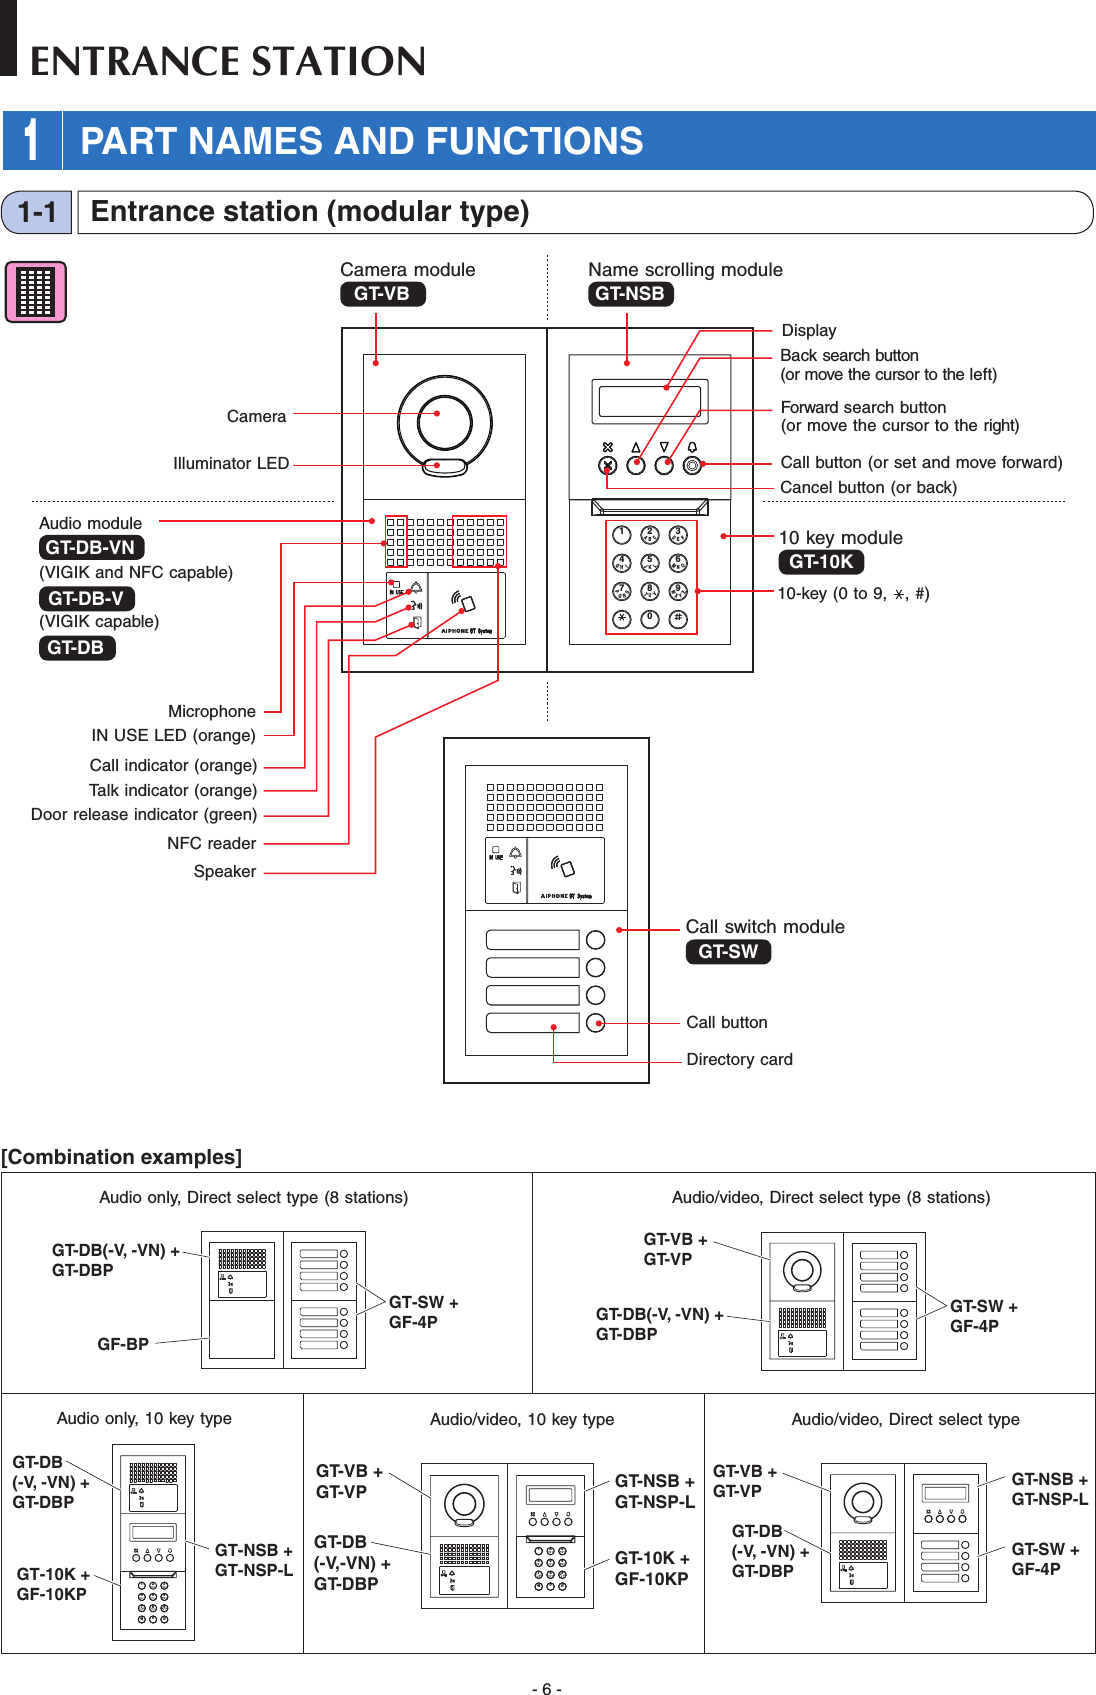 aiphone gt 1c7 wiring diagram Collection-Page 6 of GTDMBN GT Apartment Inter System User Manual ENG GT DMB MKB 17 05 29 4-f